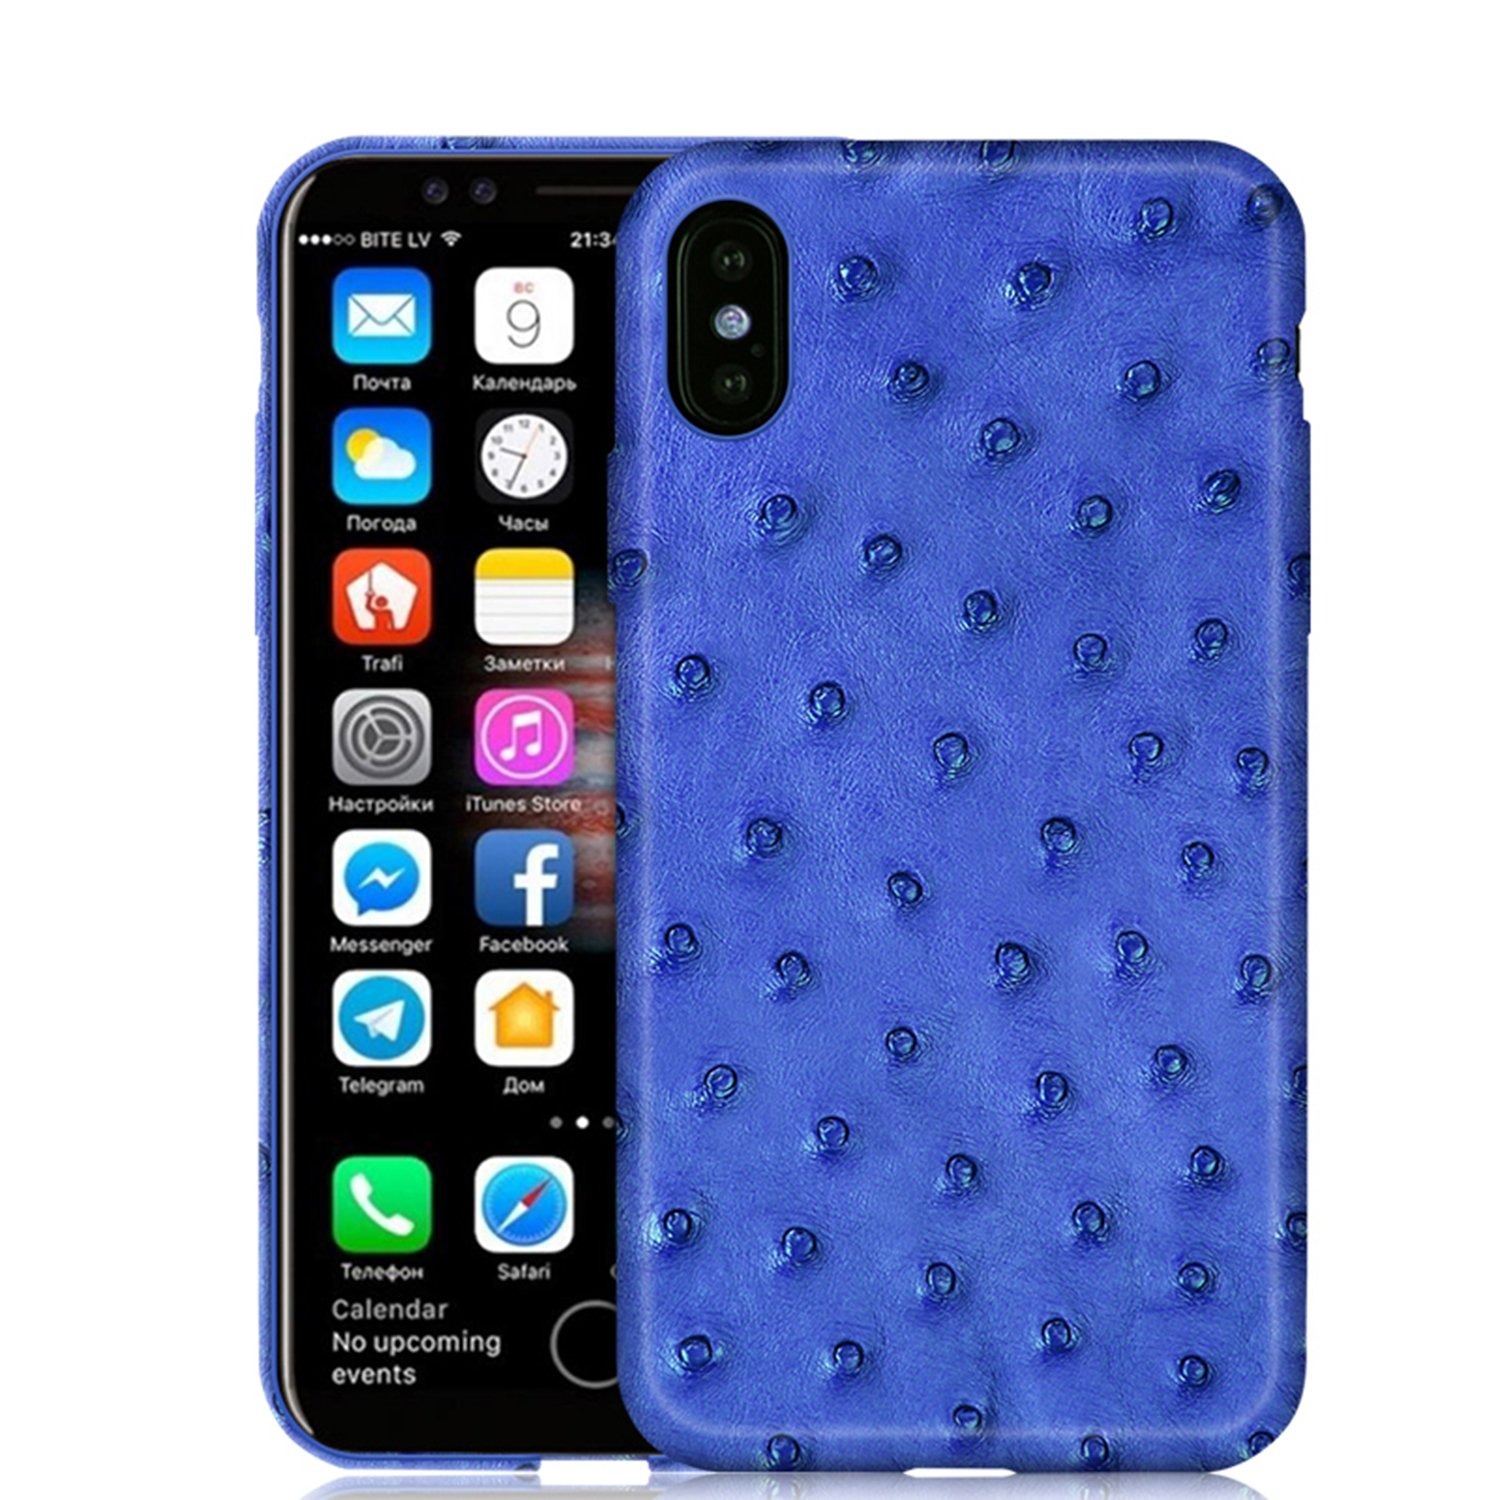 Luxury Case by KEBE Upgrade Ostrich Leather Lightweight Hardshell Back Cover Case Shockproof Case for Iphone X 5.8 Inch Blue